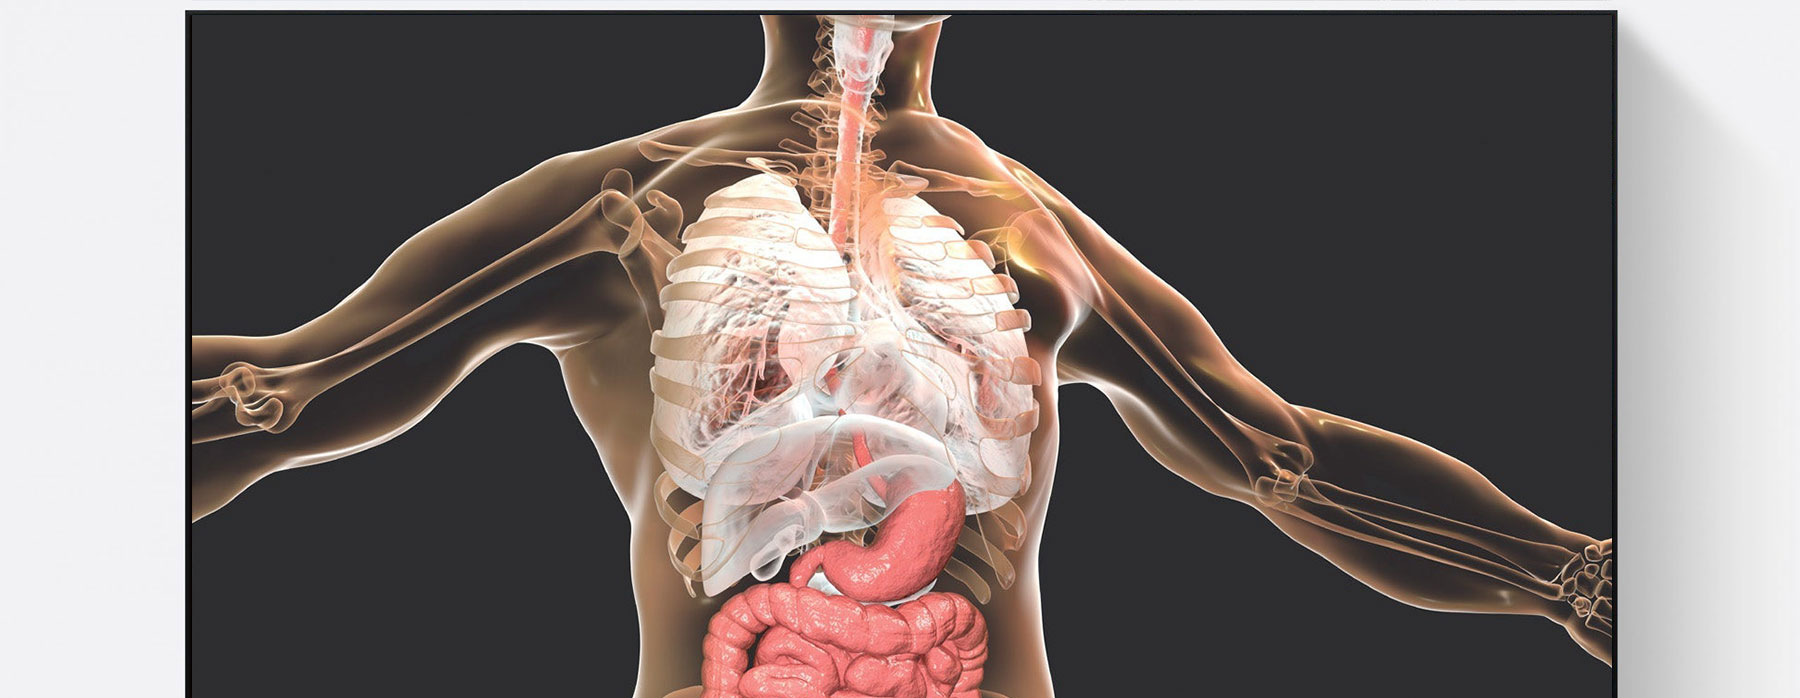 Major Systems In The Human Body Advanced Course